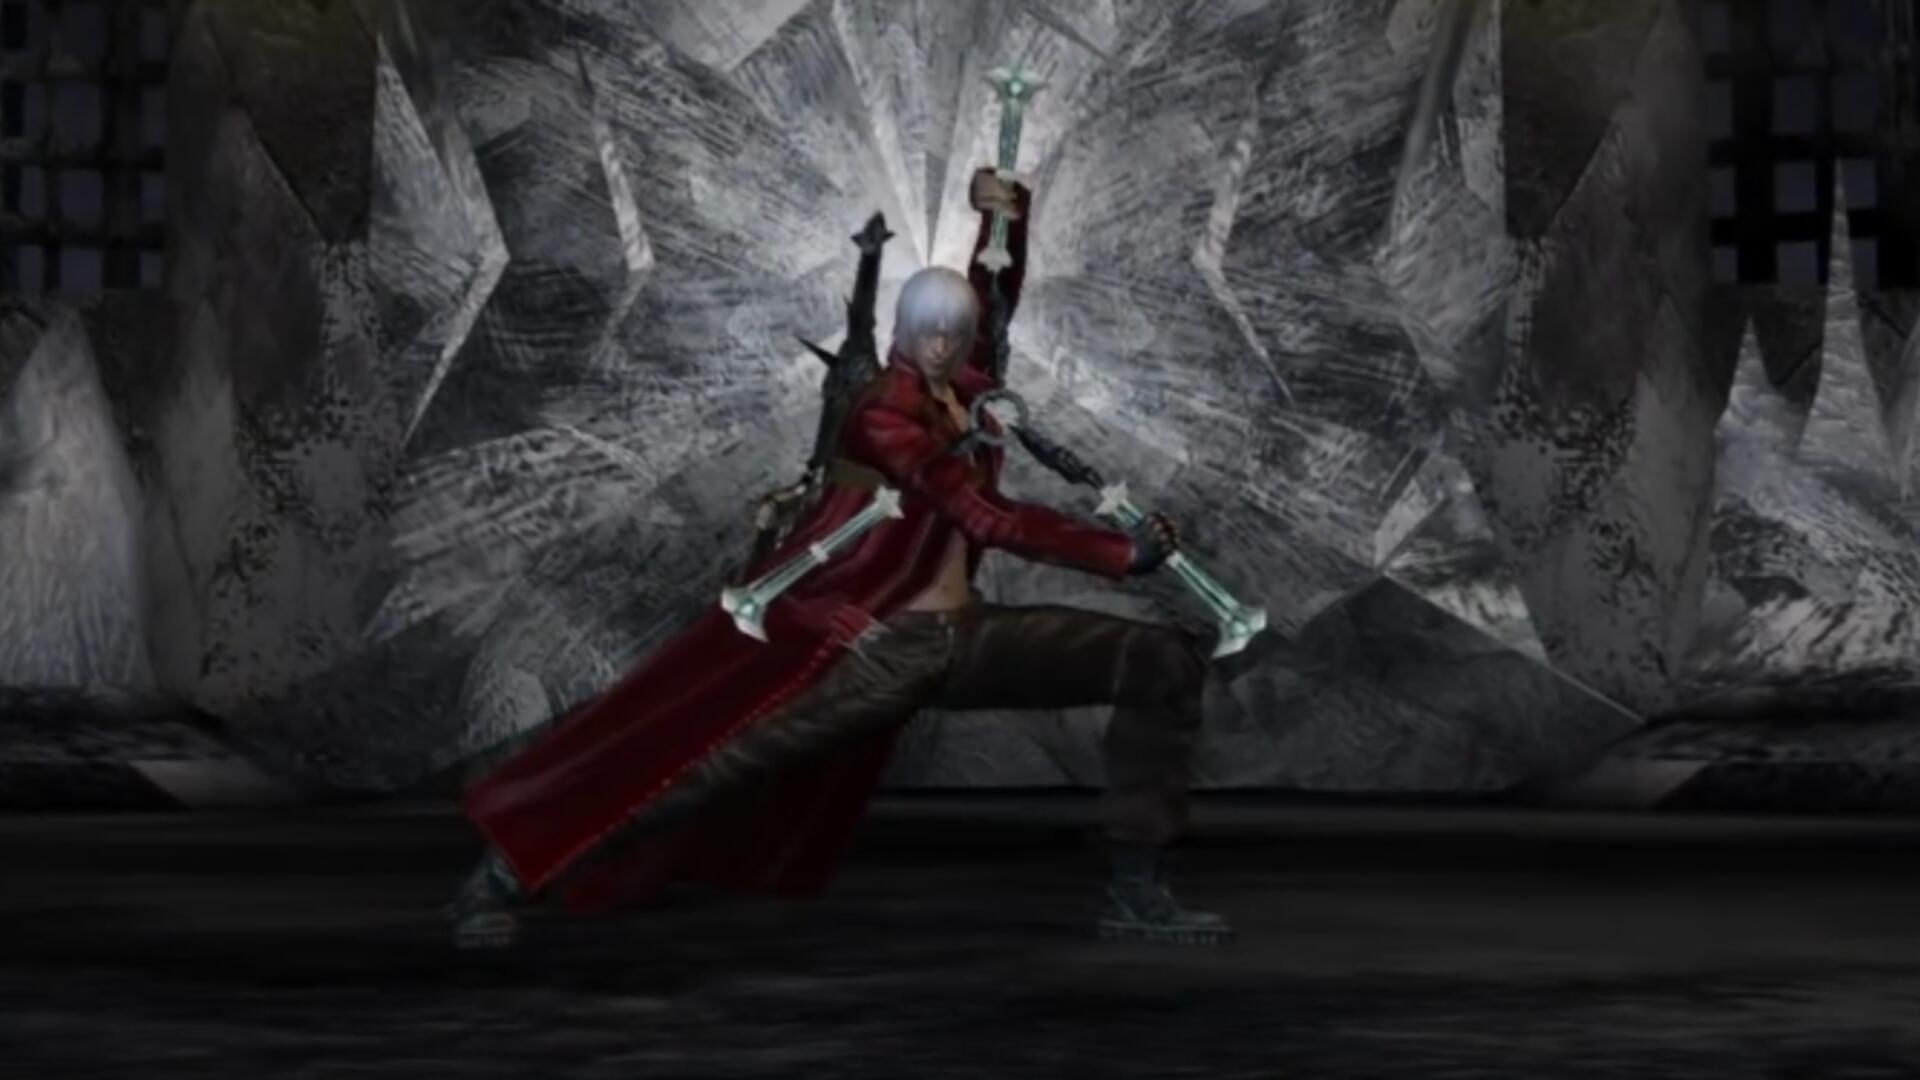 Monster Hunter World is Getting Devil May Cry's Dante, and he's as Badass as Ever